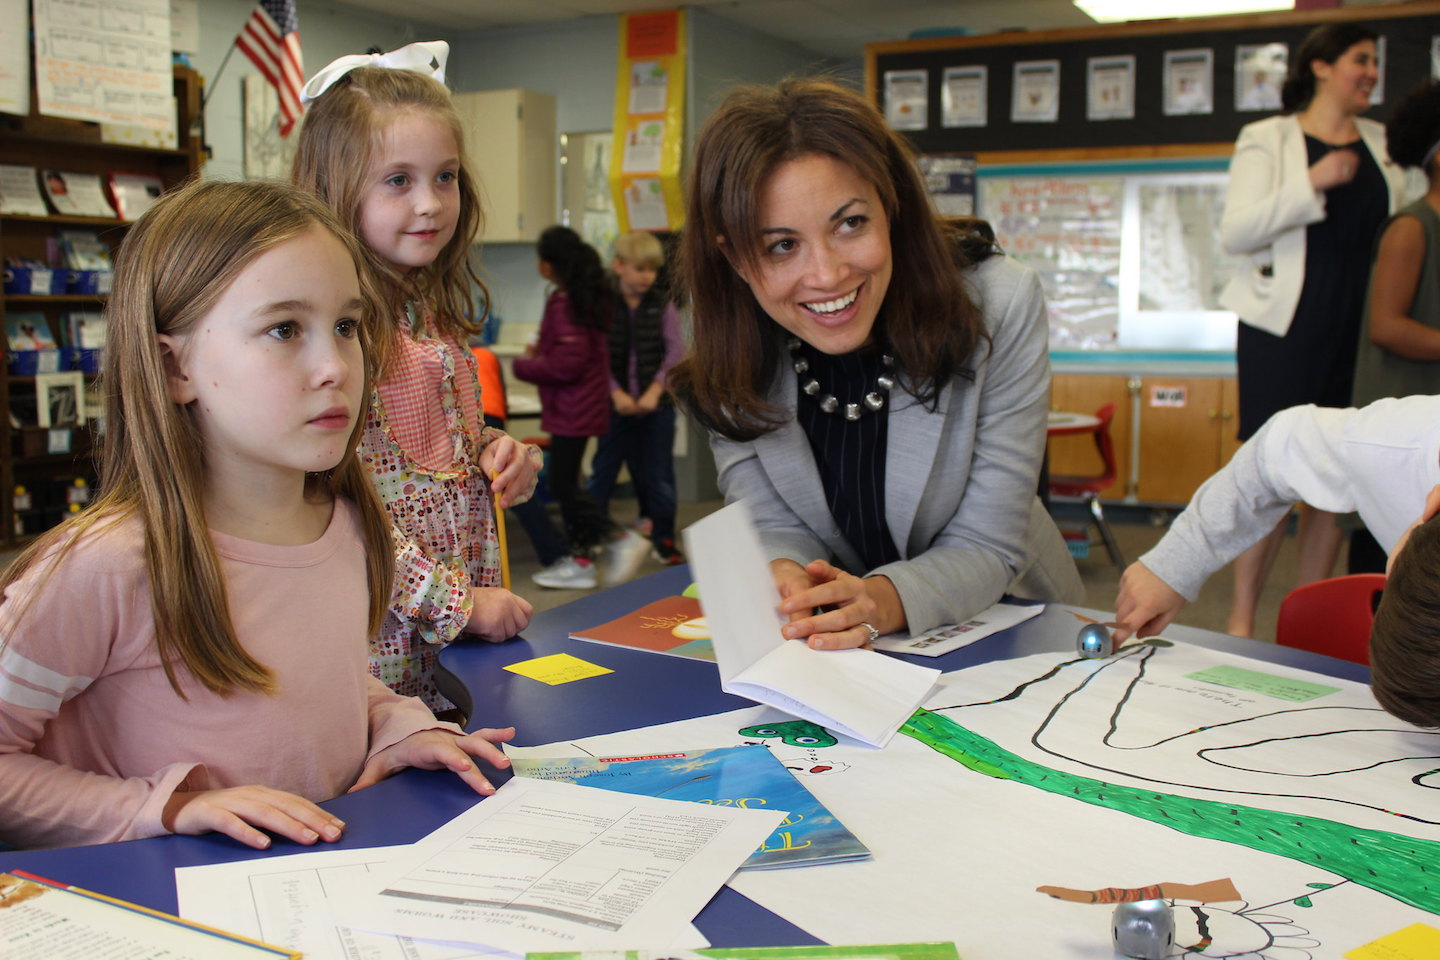 Schwinn visits with students at Rutherford County school in February, soon after becoming the state's education chief. (Photo courtesy of Tennessee Department of Education)